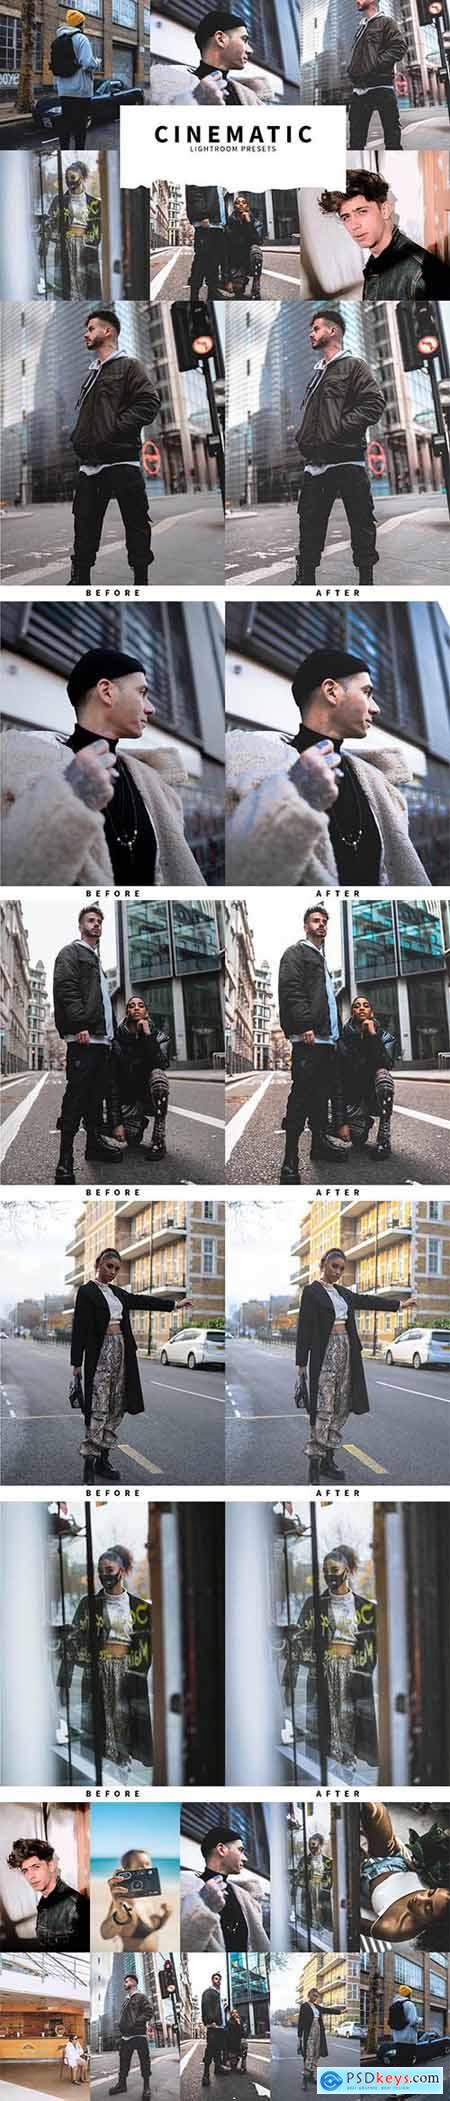 10 Cinematic Lightroom Presets 5978551